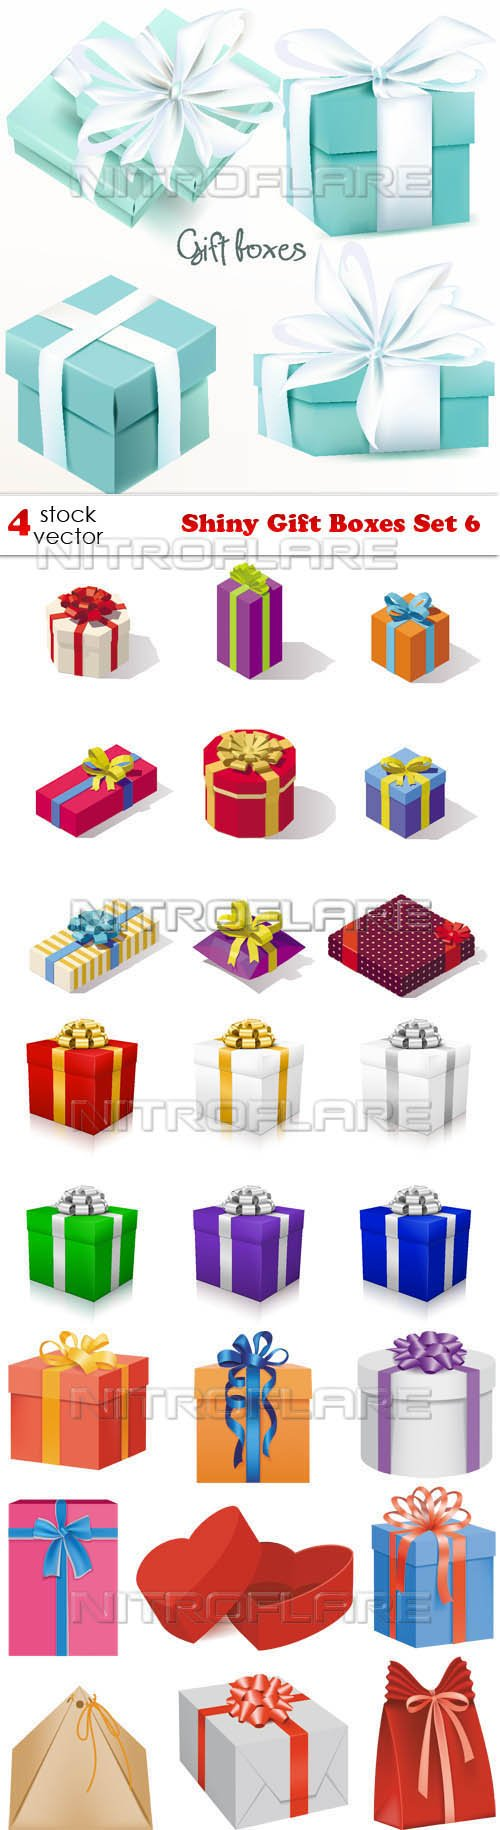 Vectors - Shiny Gift Boxes Set 6